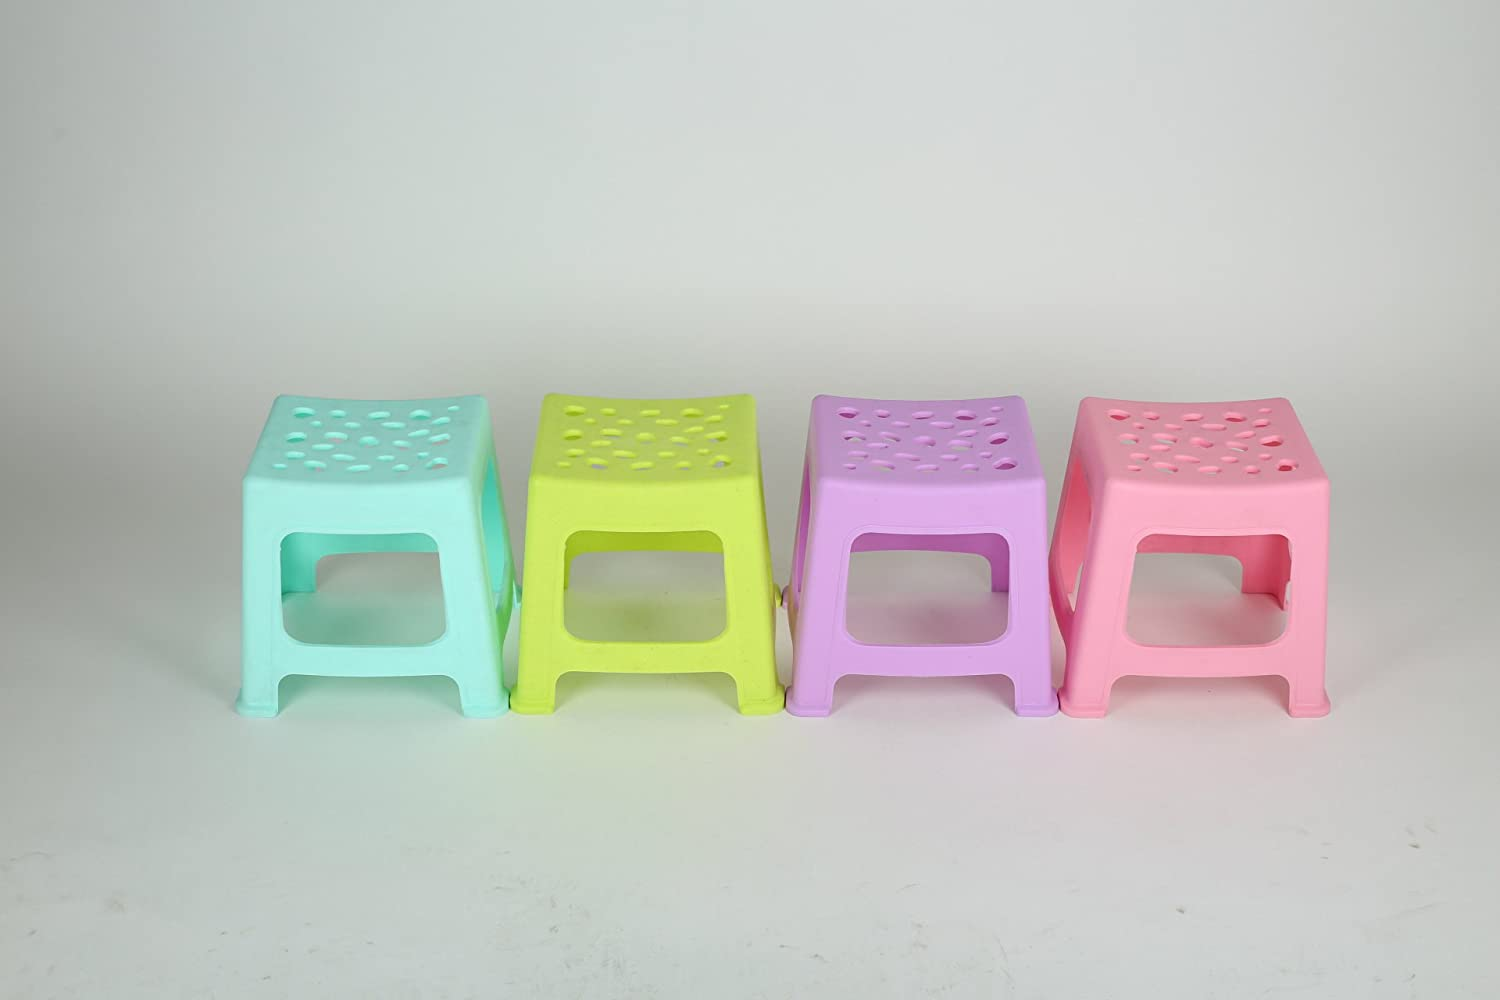 Dana Carrie A plastic stool, Chair of the cold stool square exposed 4PCS